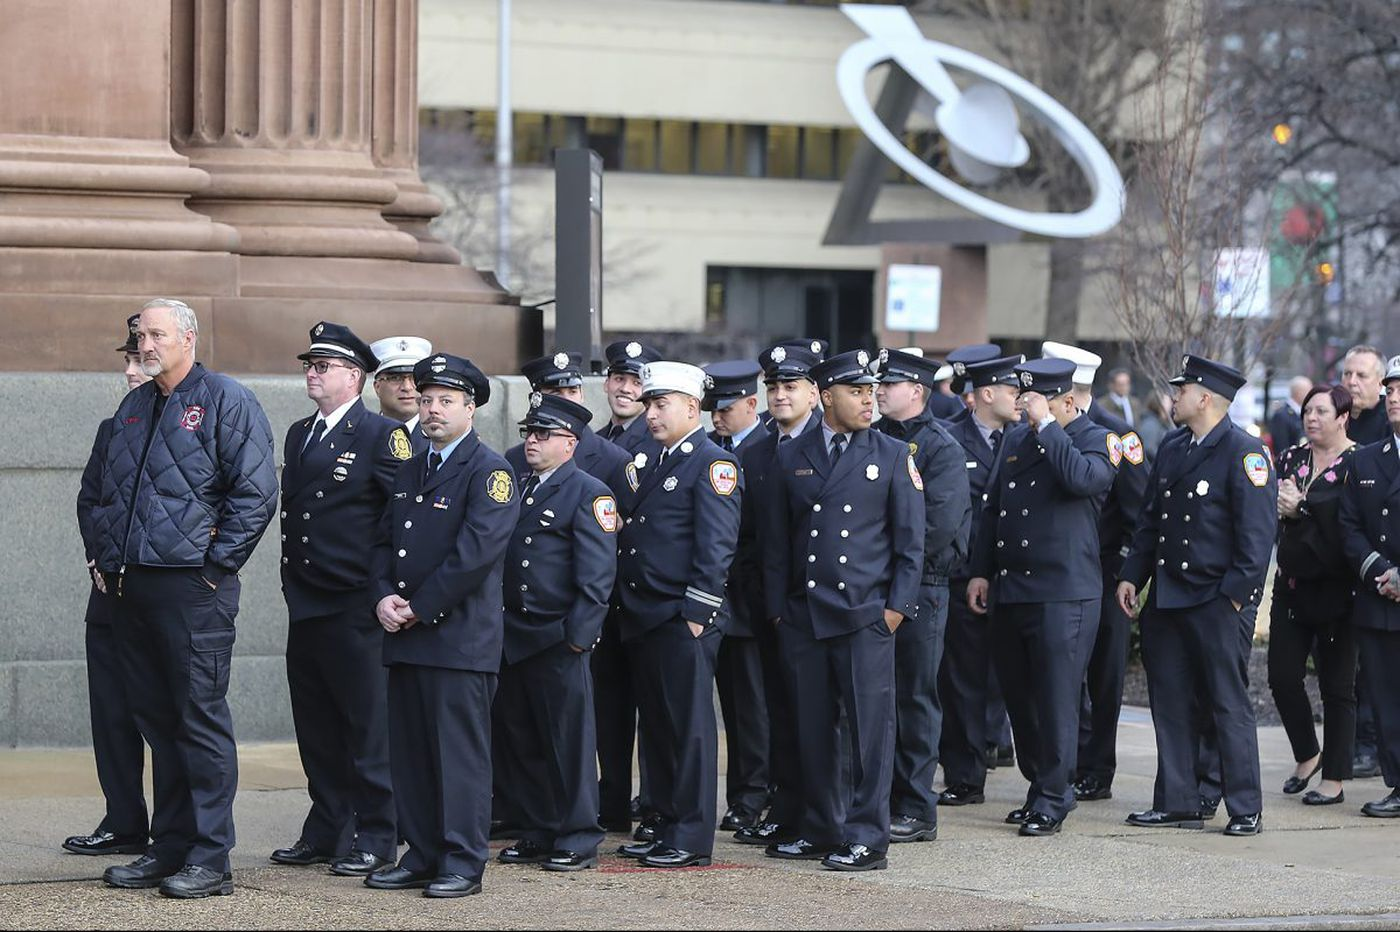 Show of unity for fallen Philly firefighter LeTourneau